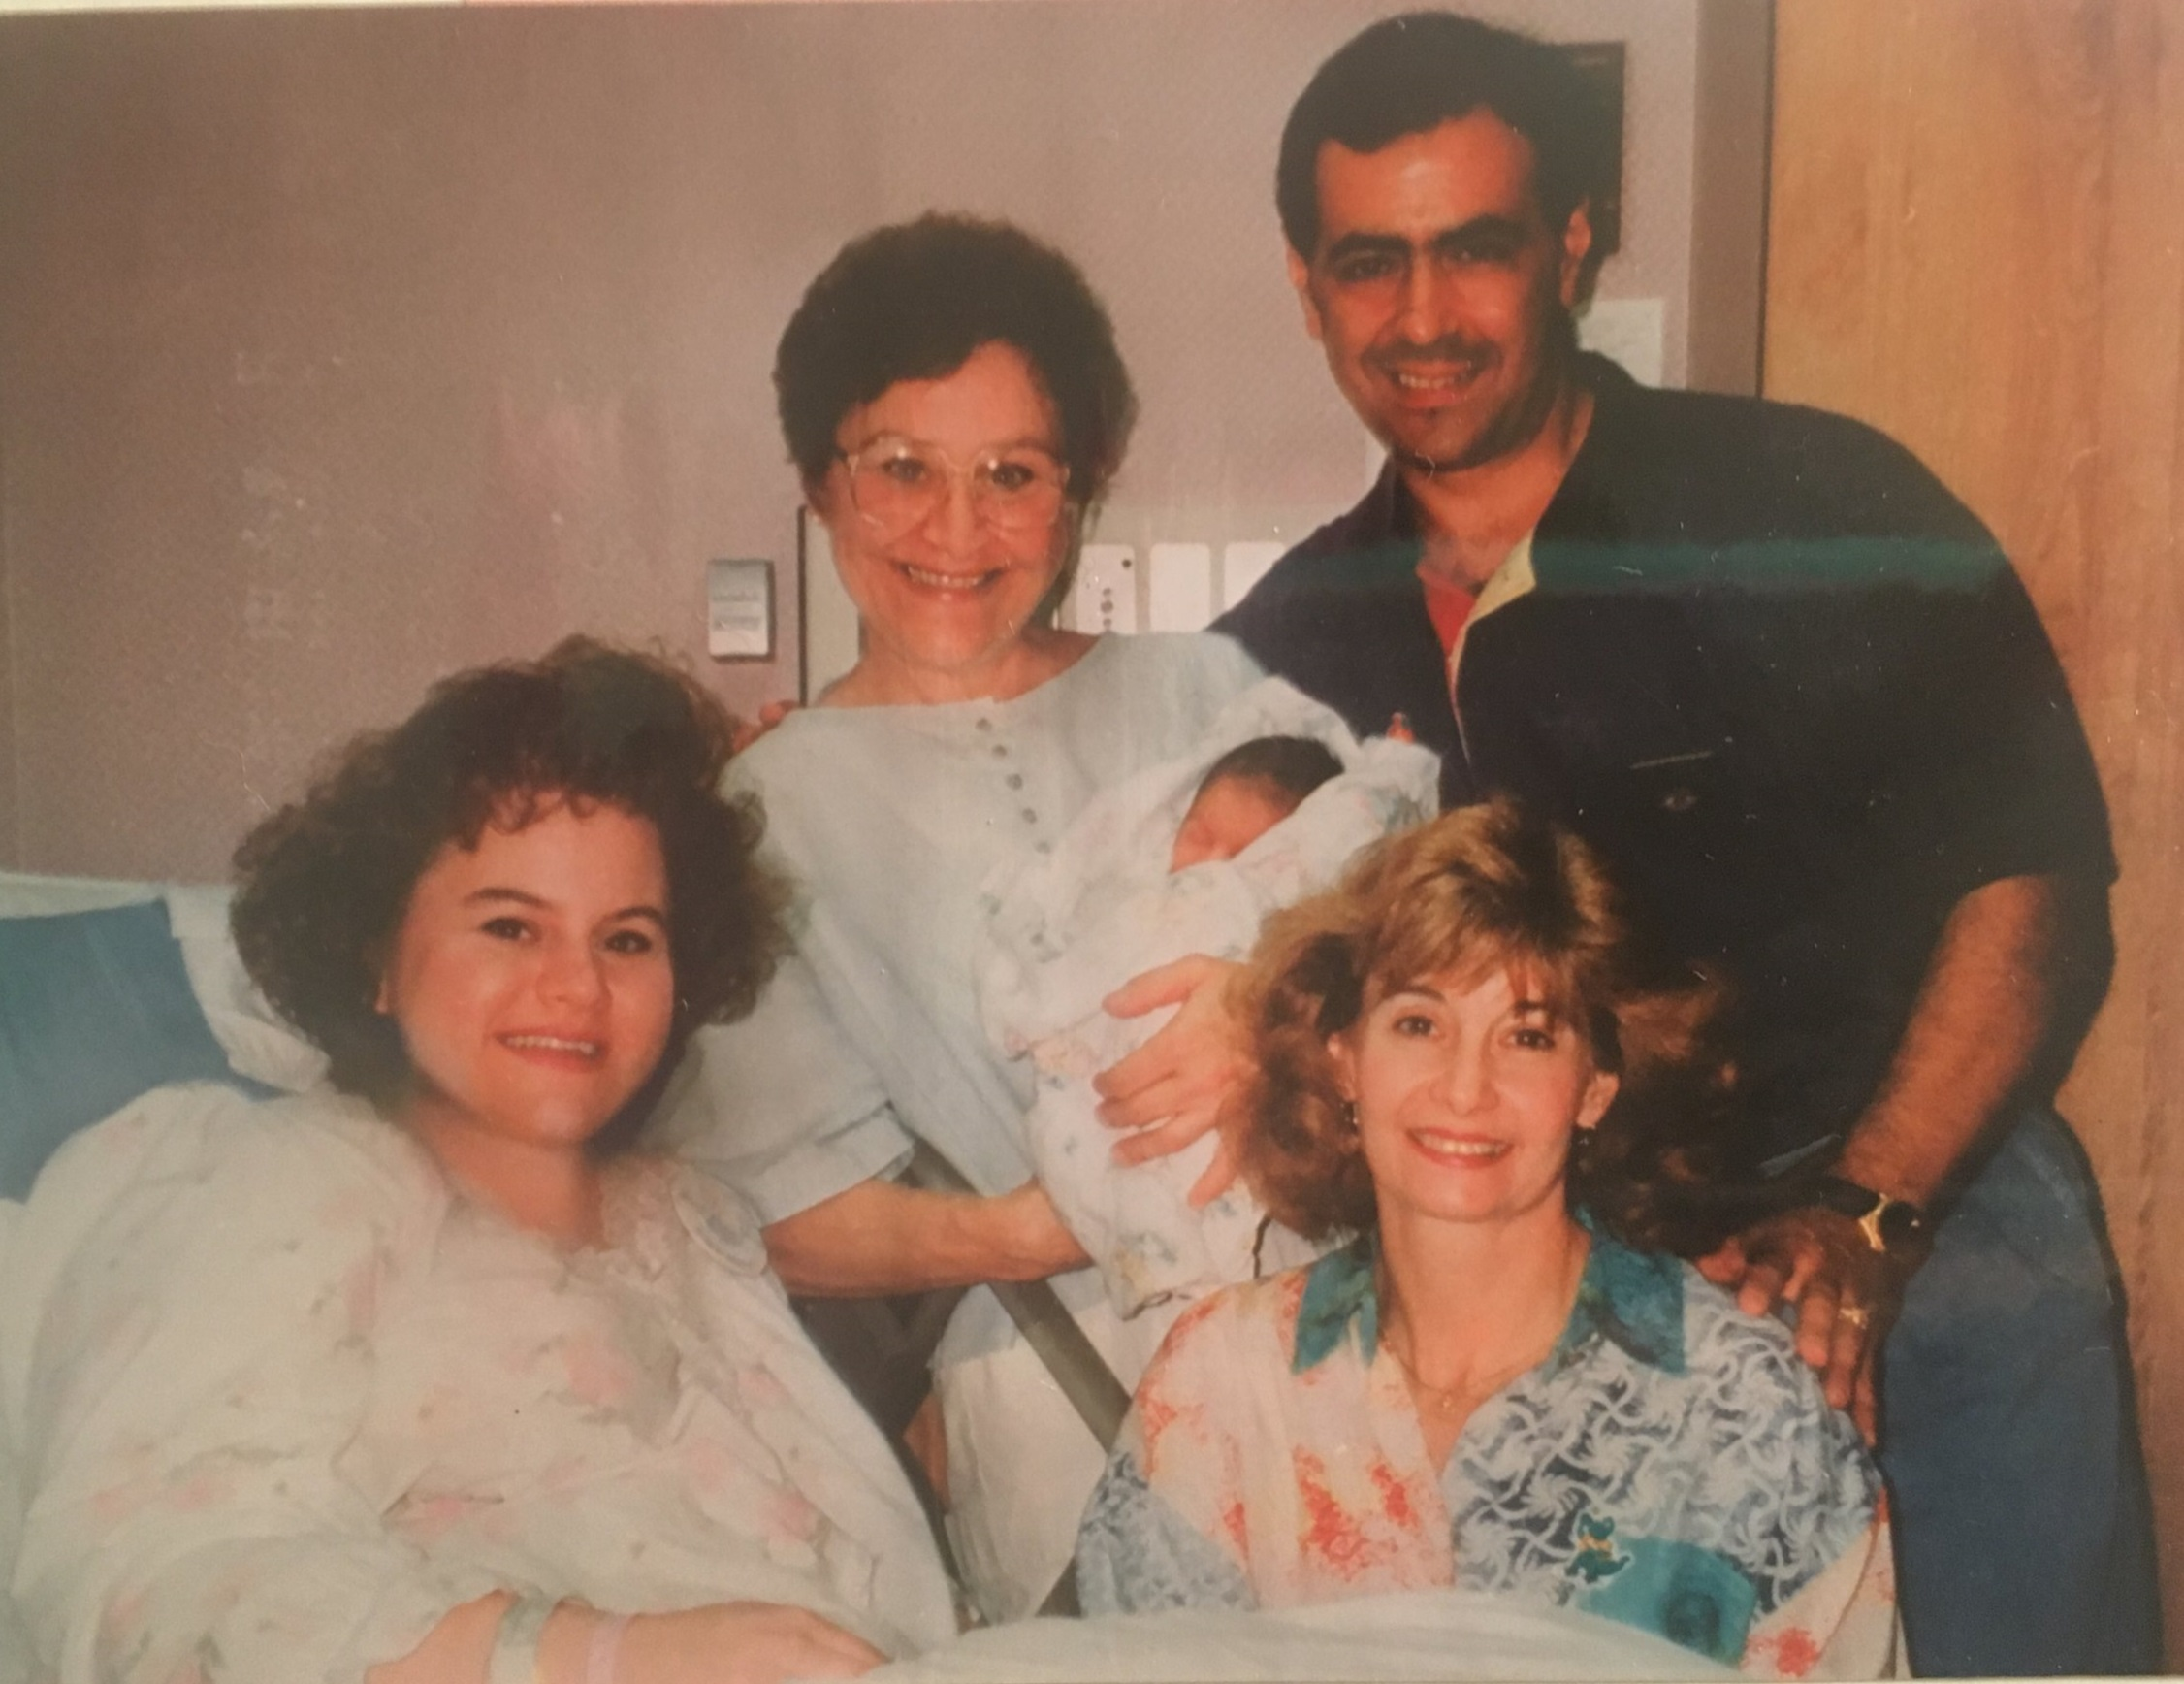 Torie and her family in the hospital after she was born